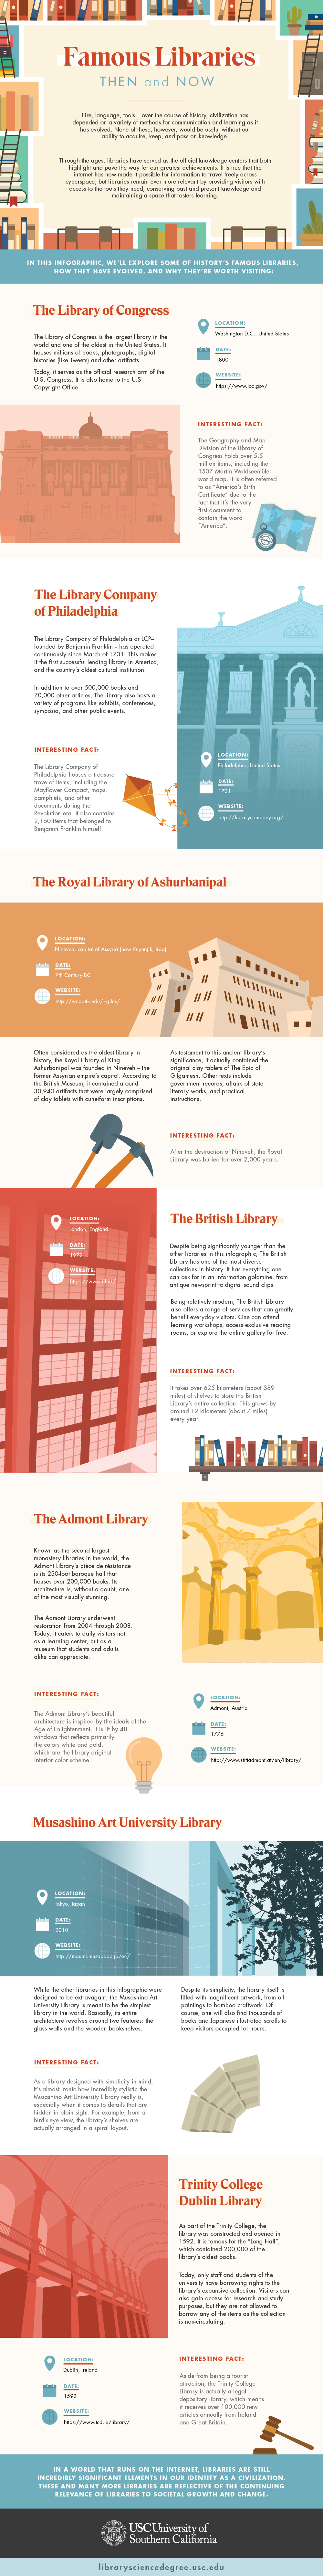 Infographic - world's most famous libraries